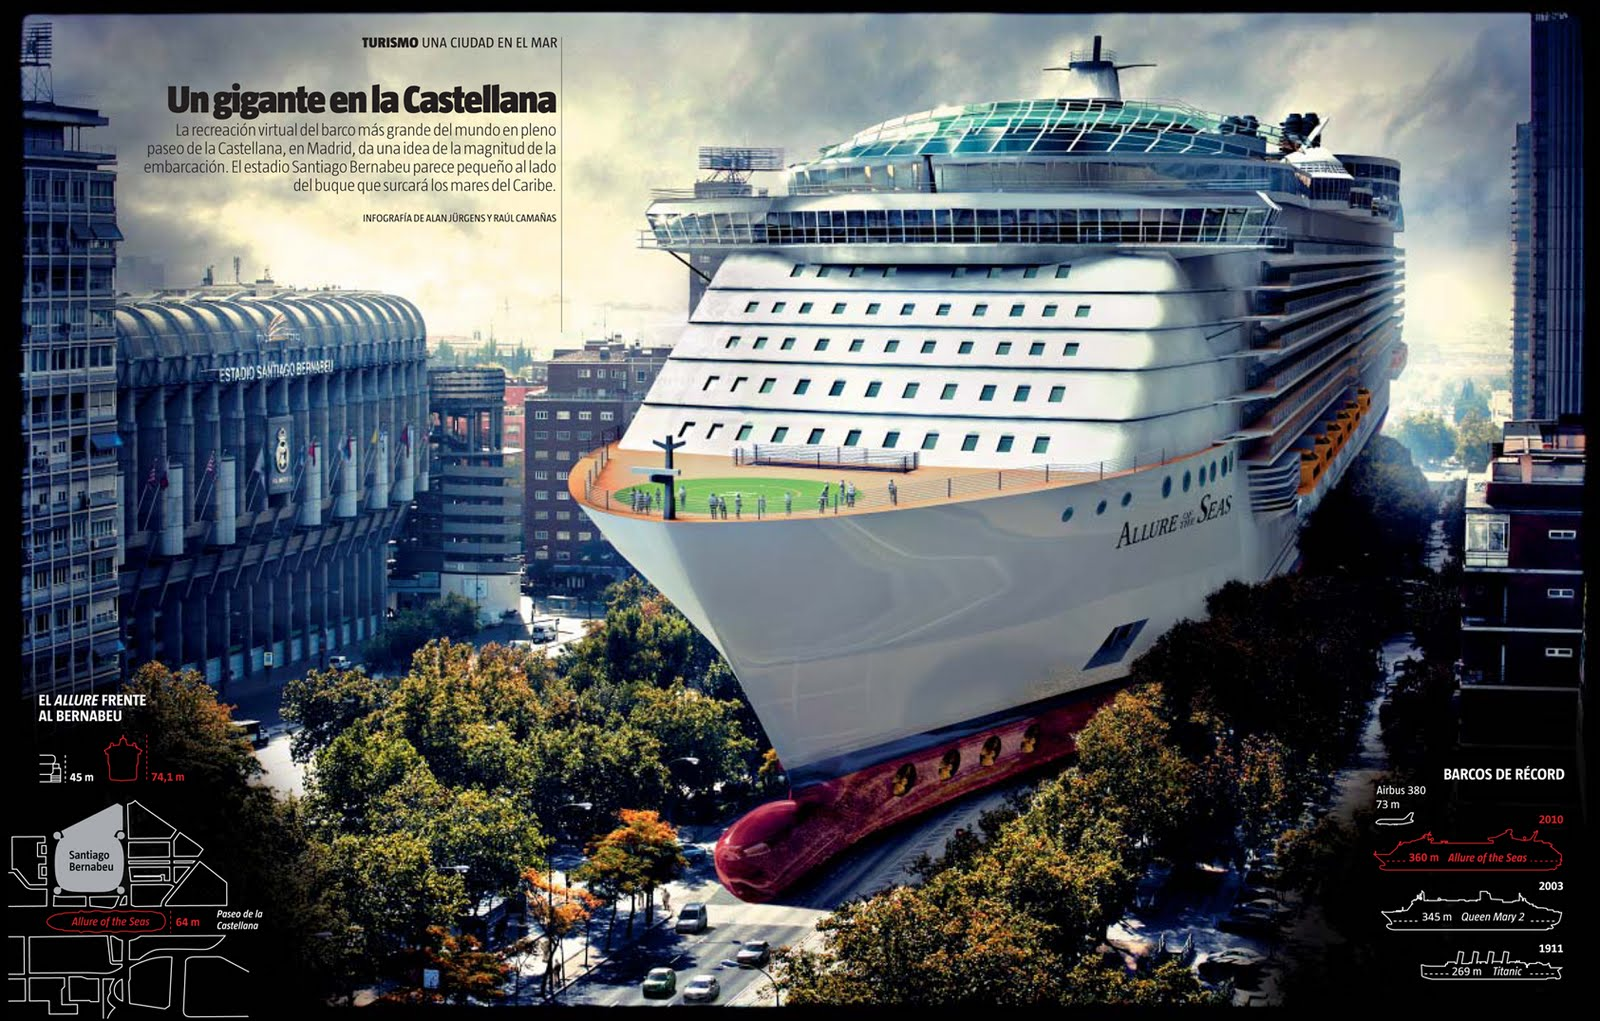 Board The World's Largest Cruise Ship With Google Street View